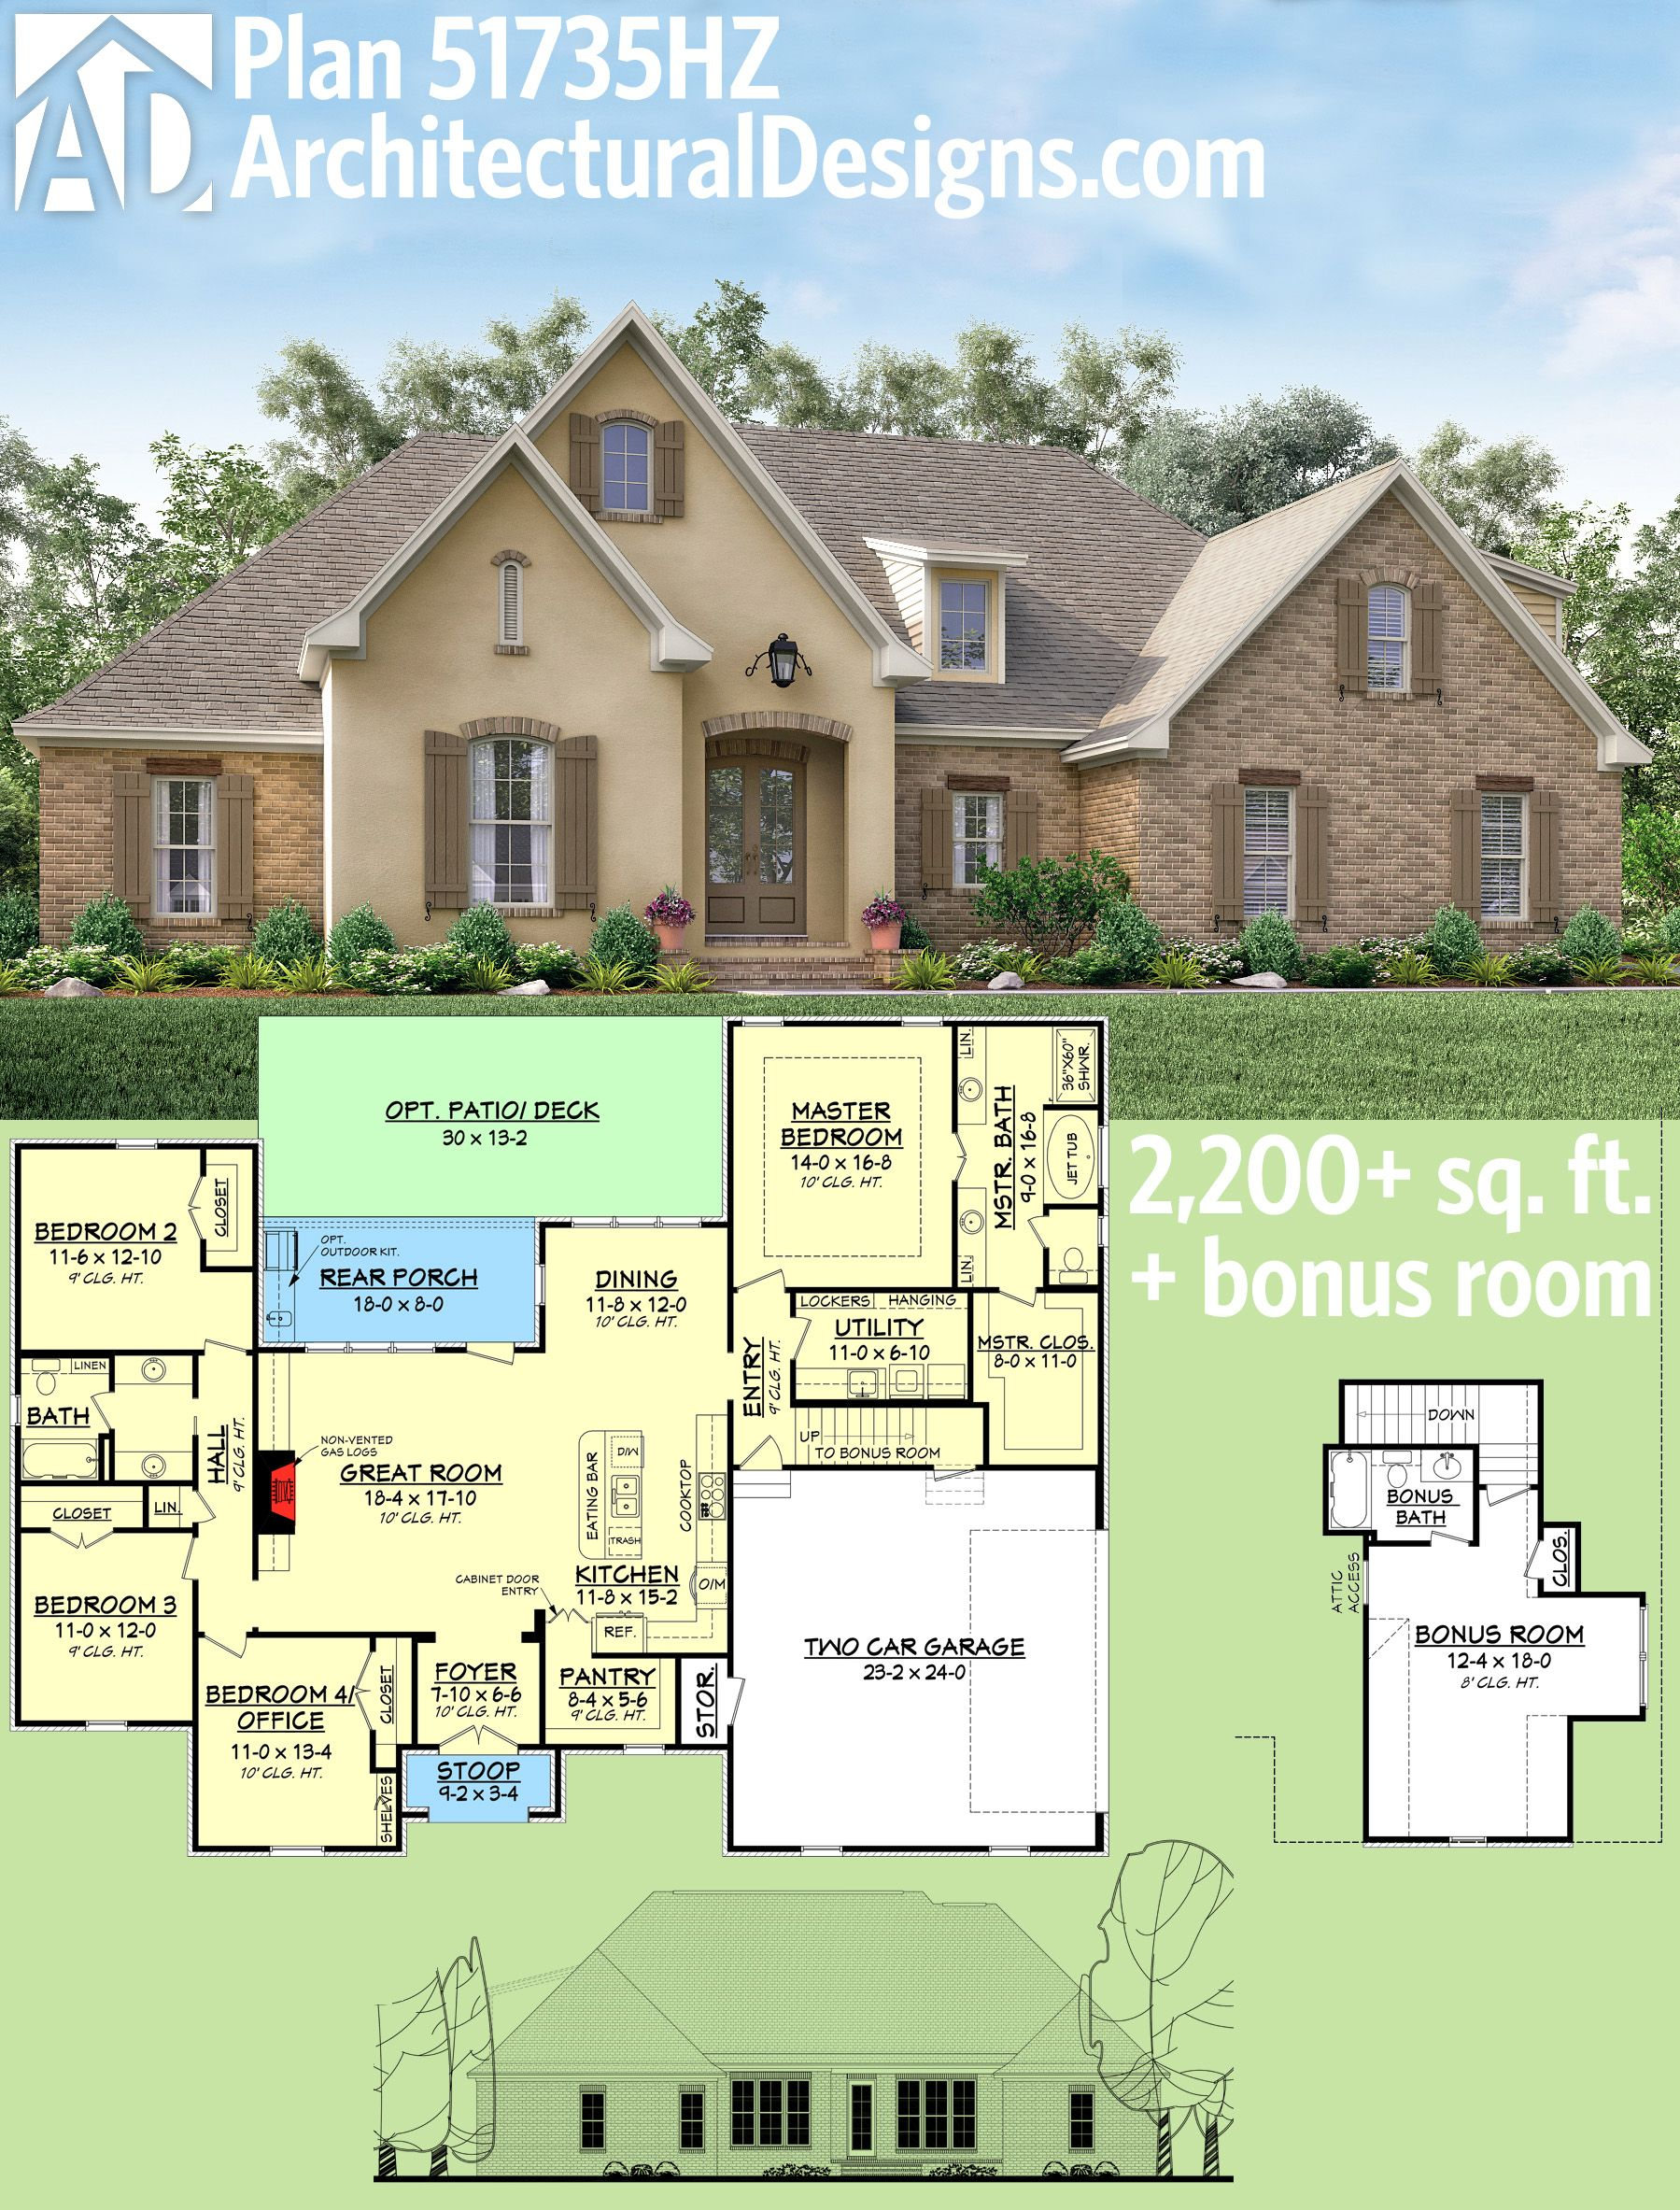 Plan 51735hz Flexible Southern Home Plan With Bonus Room French Country House Plans Country House Plans Southern House Plans